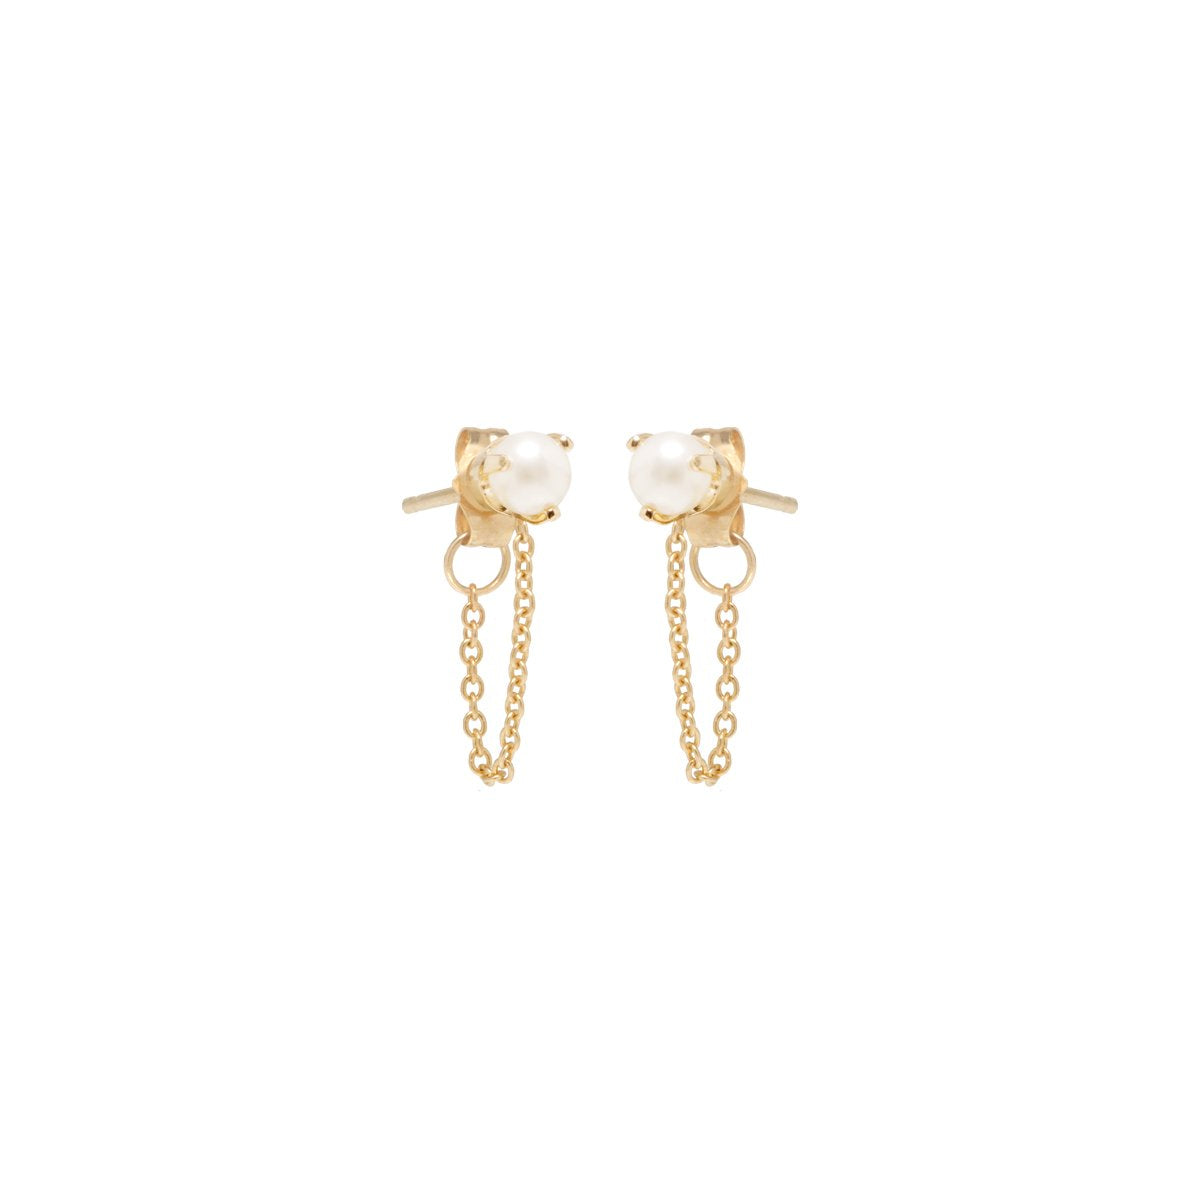 Zoe Chicco 14k Pearl Chain Stud Earrings